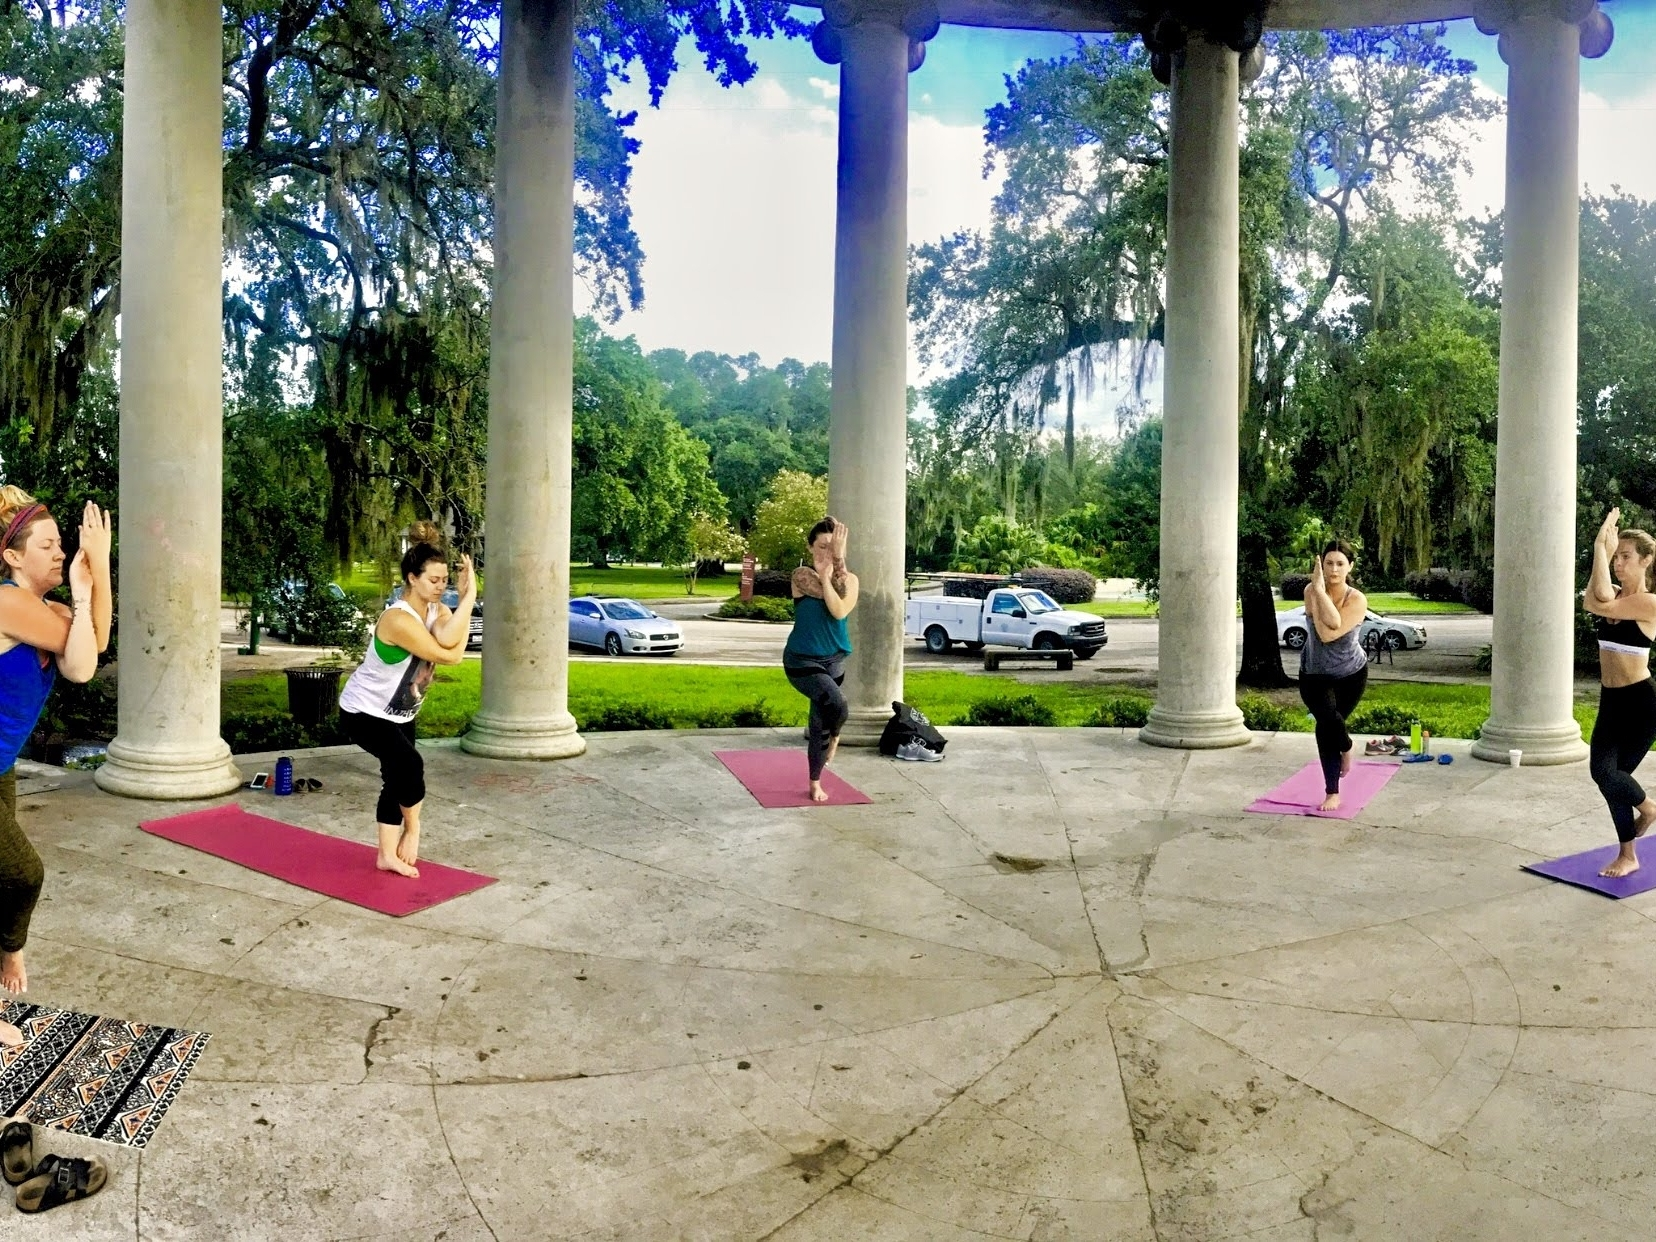 Wednesdays in City Park - Join us for sunrise yoga at the most beautiful park in the city, under the Peristyle. Kaitlyn will lead a 55-minute challenging, friendly, and fun, all-levels donation-based flow every Wednesday morning at 6:30AM underneath the Peristyle (42 Dreyfous Drive) in City Park!.Google Map: Here